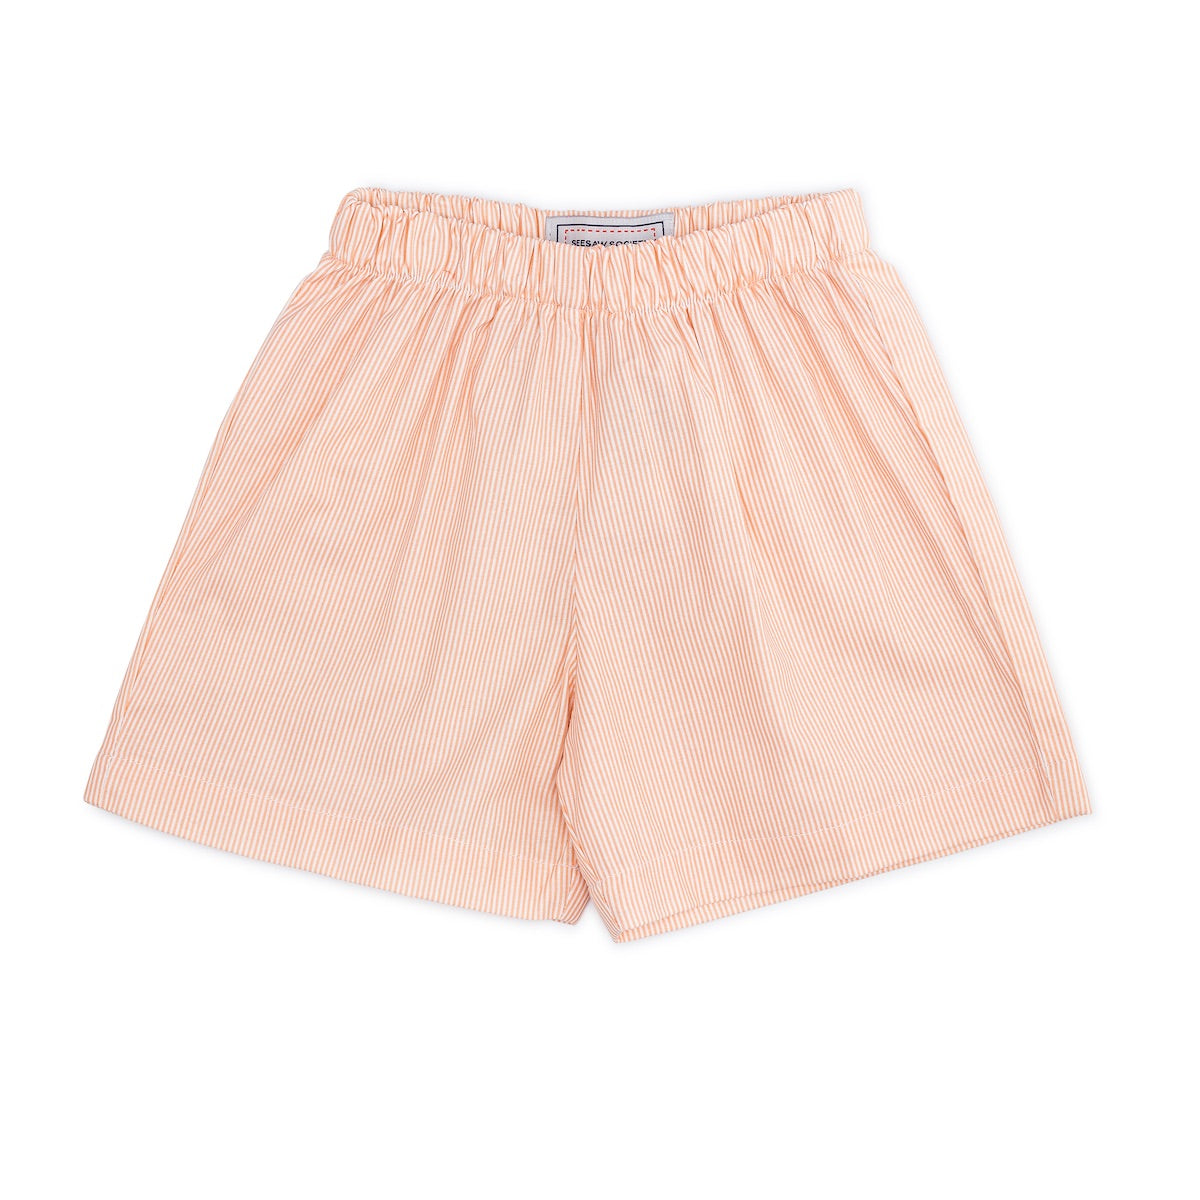 Boys Shorts, Creamsicle